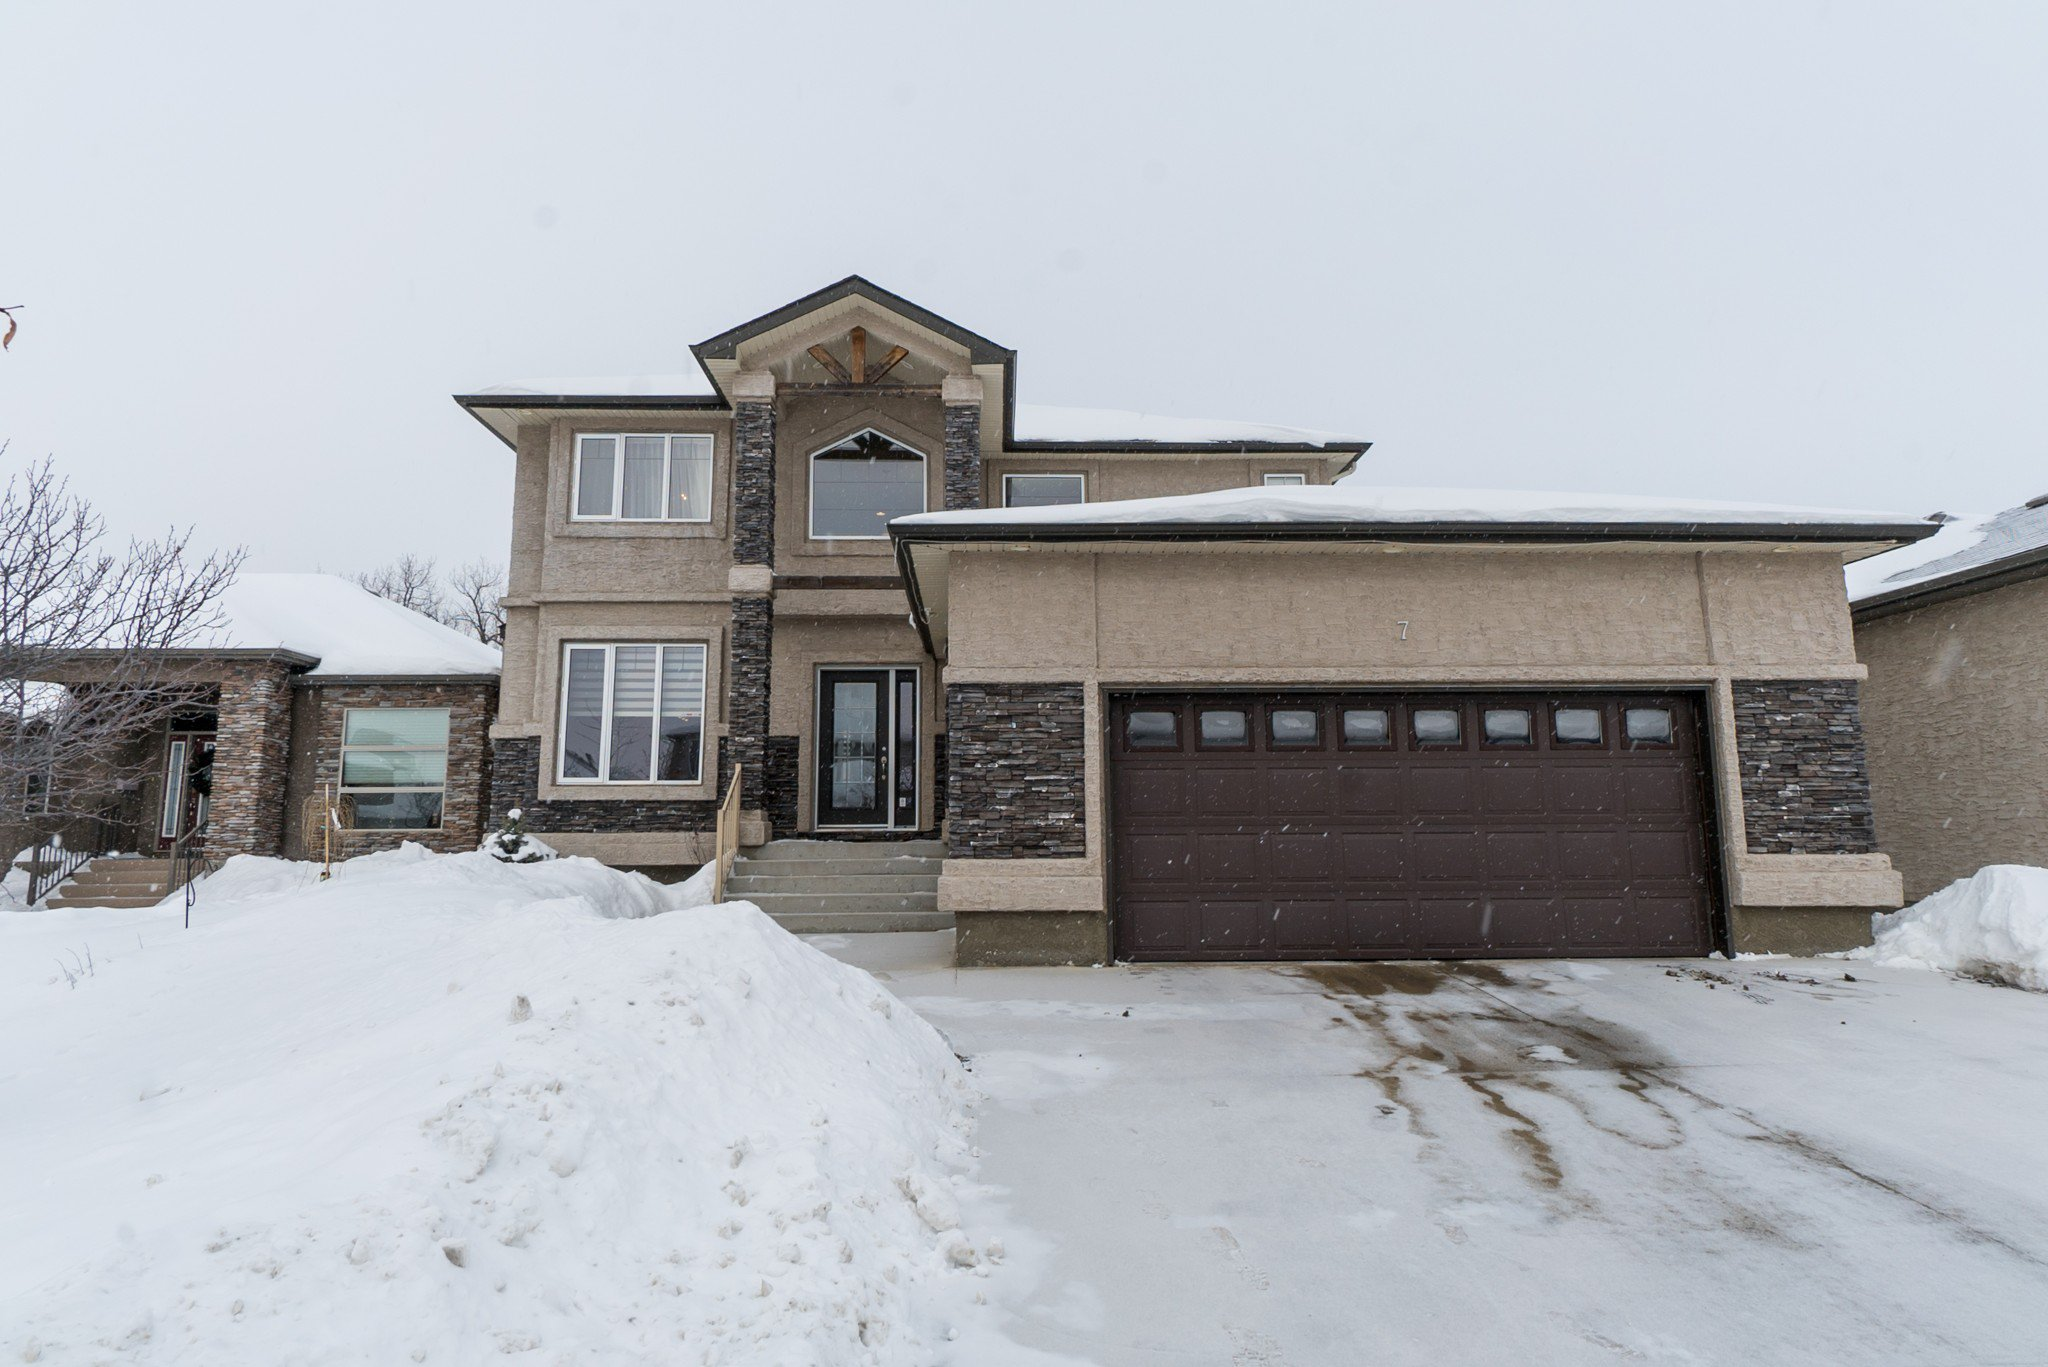 Main Photo: 7 River Valley Drive in Winnipeg: Royalwood Residential for sale (2J)  : MLS®# 1903613